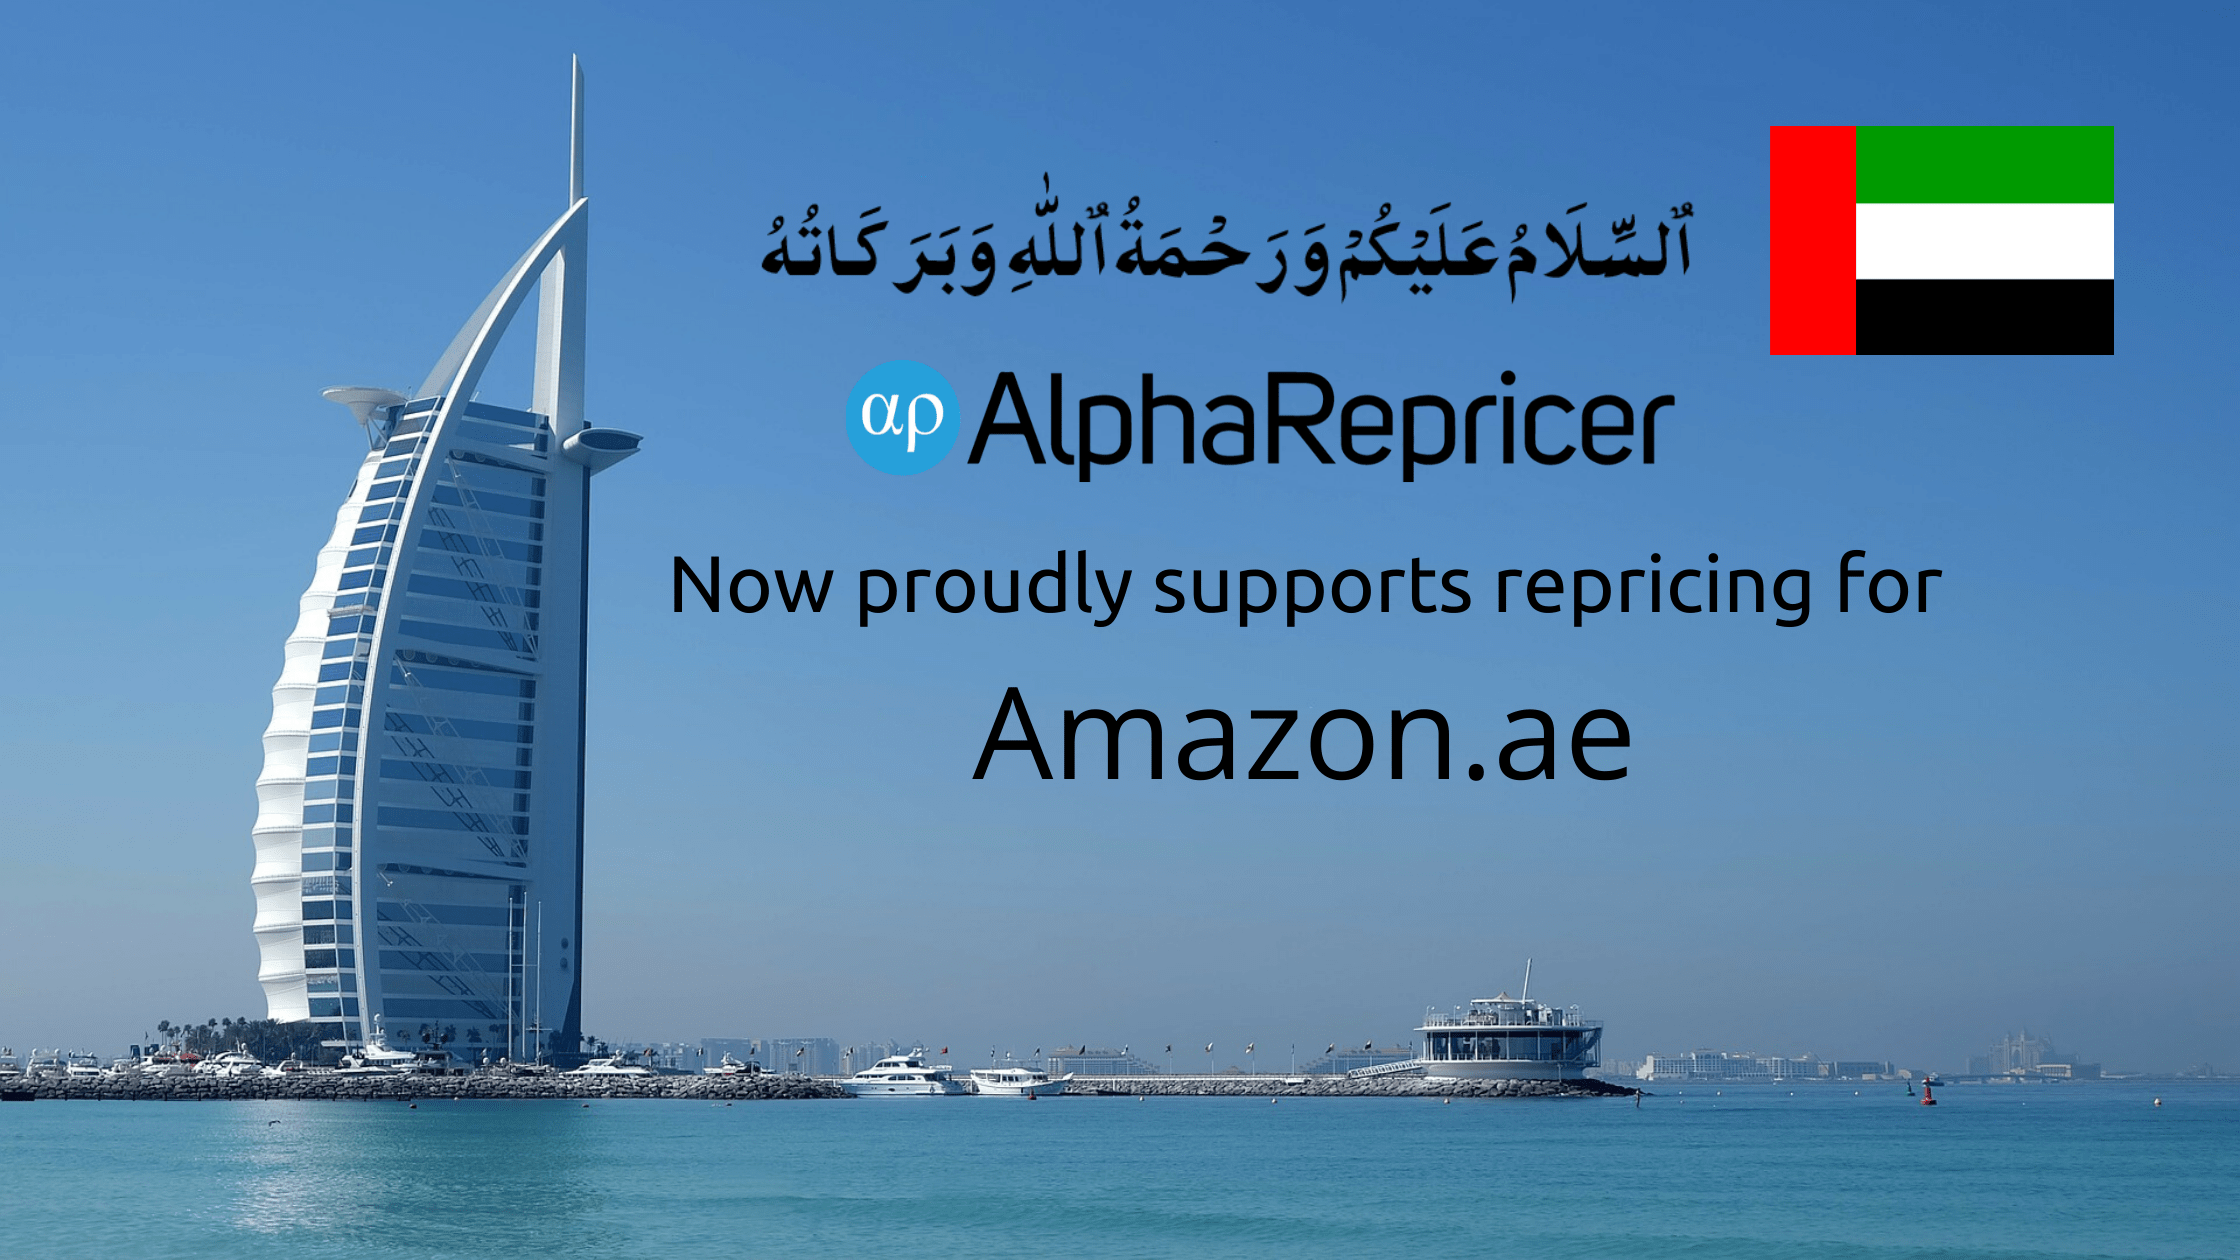 Alpha Reprice proudly announces repricing support for Amazon.ae